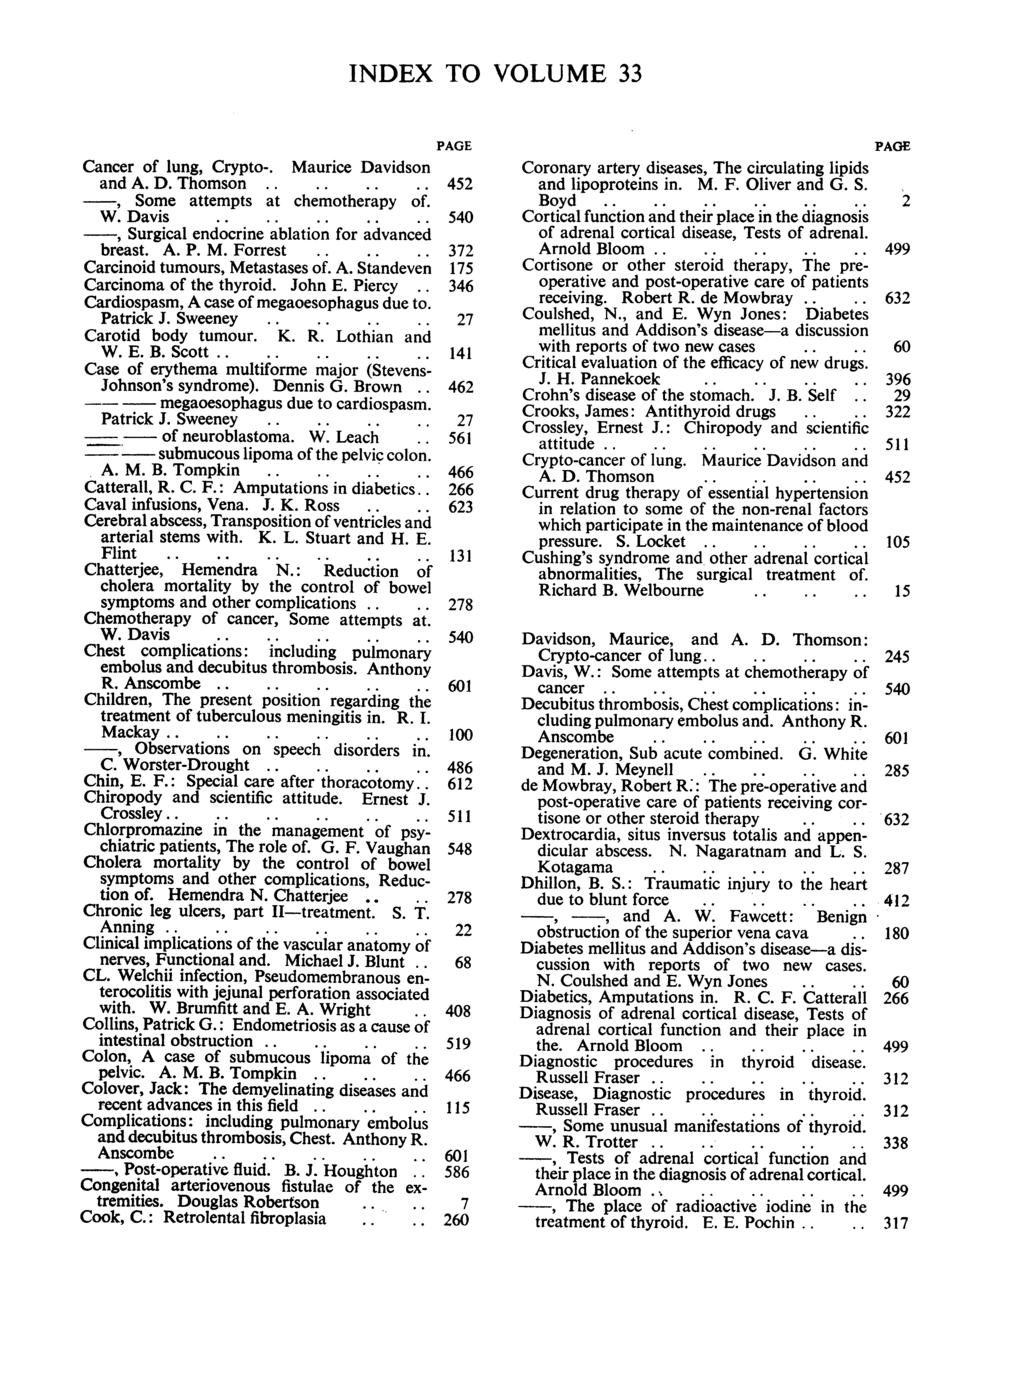 INDEX TO VOLUME 33 Cancer of lung, Crypto-. Maurice Davidson and A. D. Thomson, Some attempts at chemotherapy of. W. Davis, Surgical endocrine ablation for advanced breast. A. P. M. Forrest Carcinoid tumours, Metastases of.